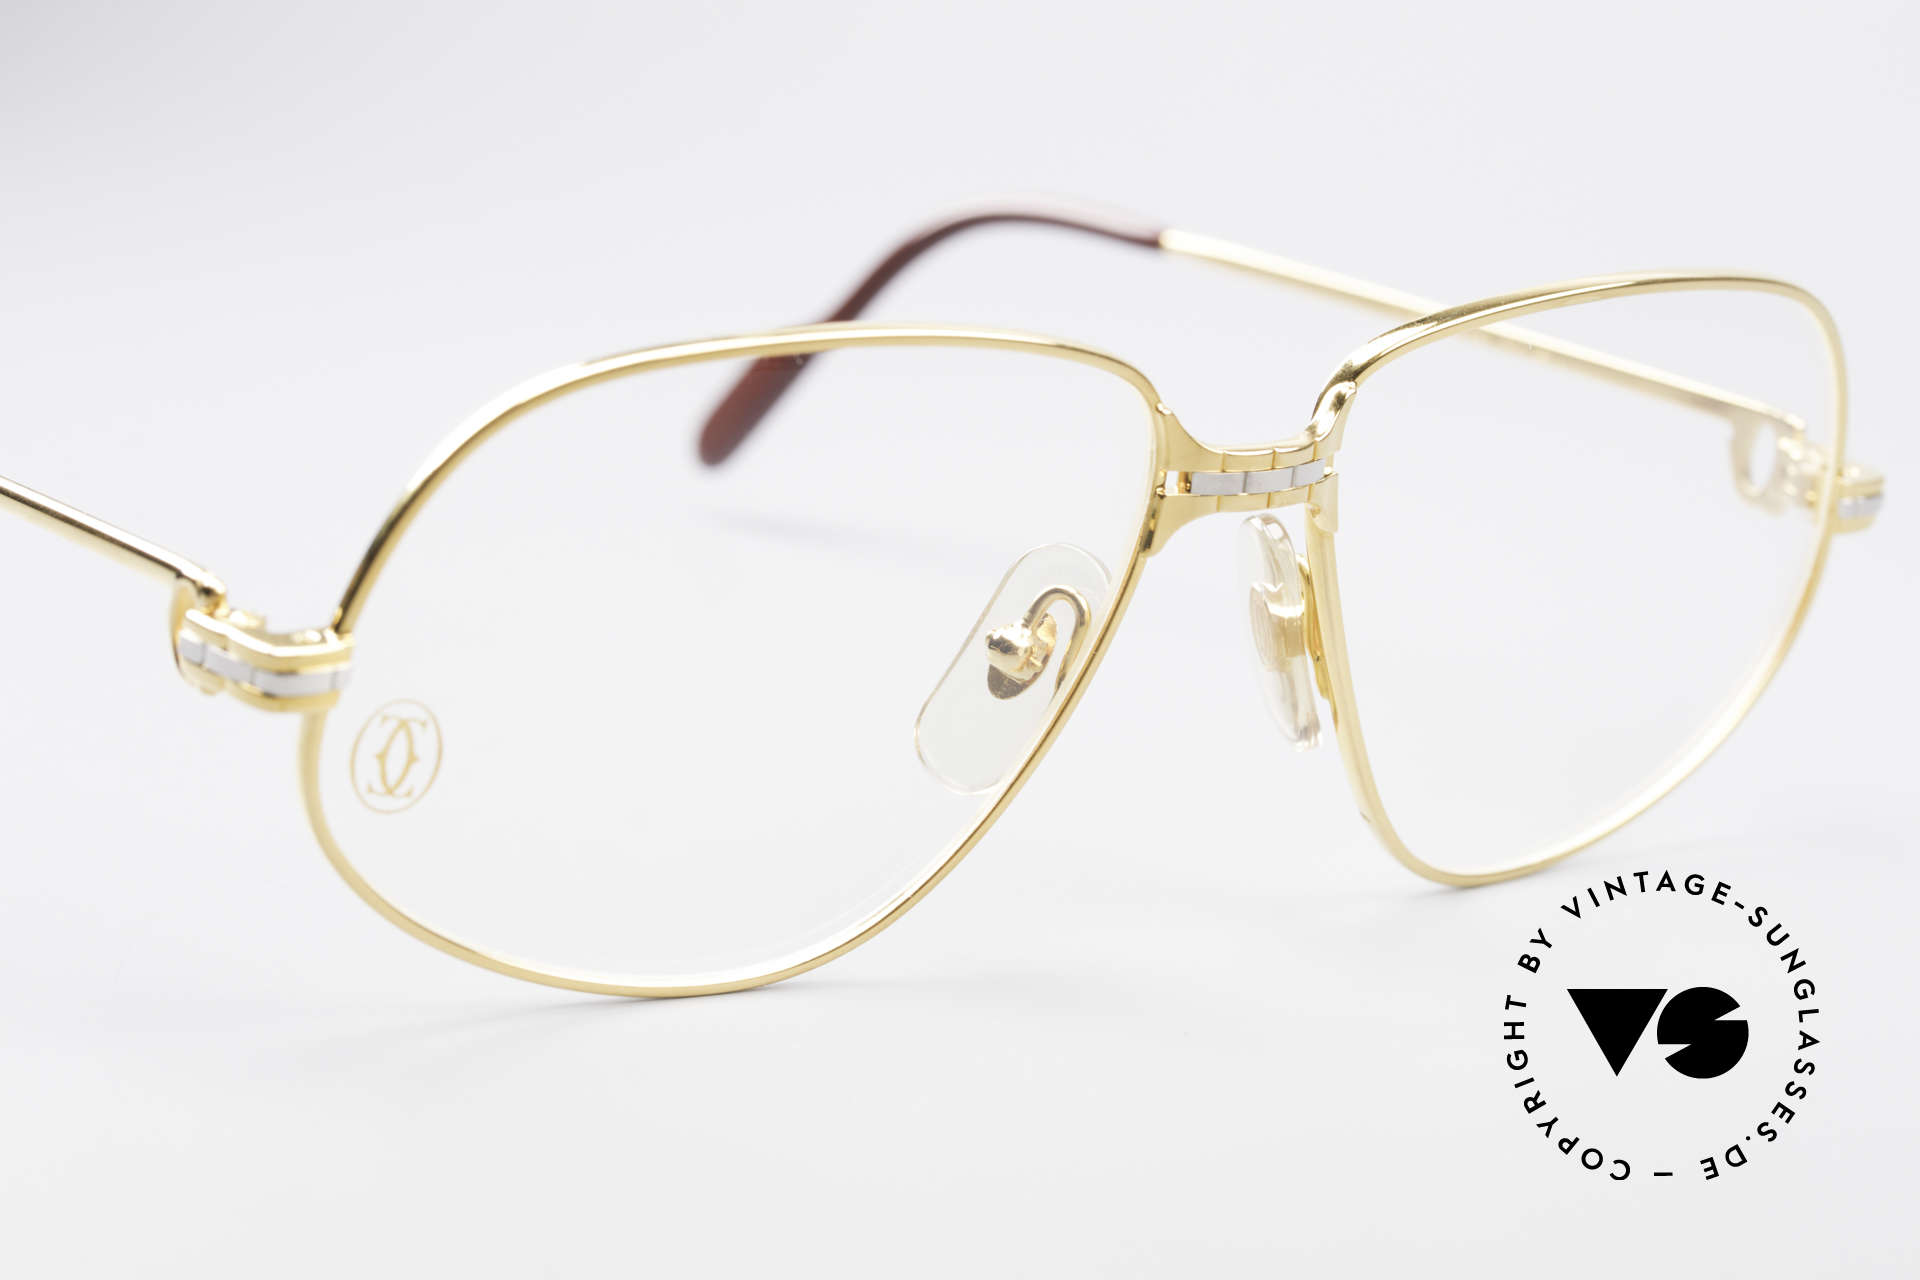 Cartier Panthere G.M. - M Luxury Eyeglasses, 22ct gold-plated finish (like all vintage Cartier originals), Made for Men